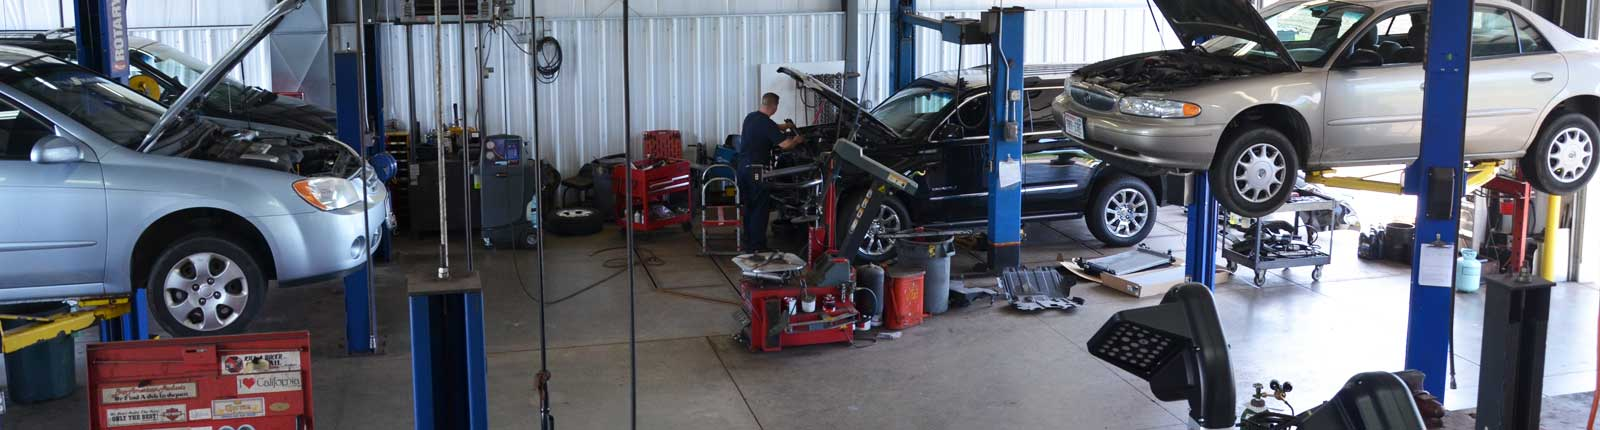 Inside the AFS Service's Auto Repair shop